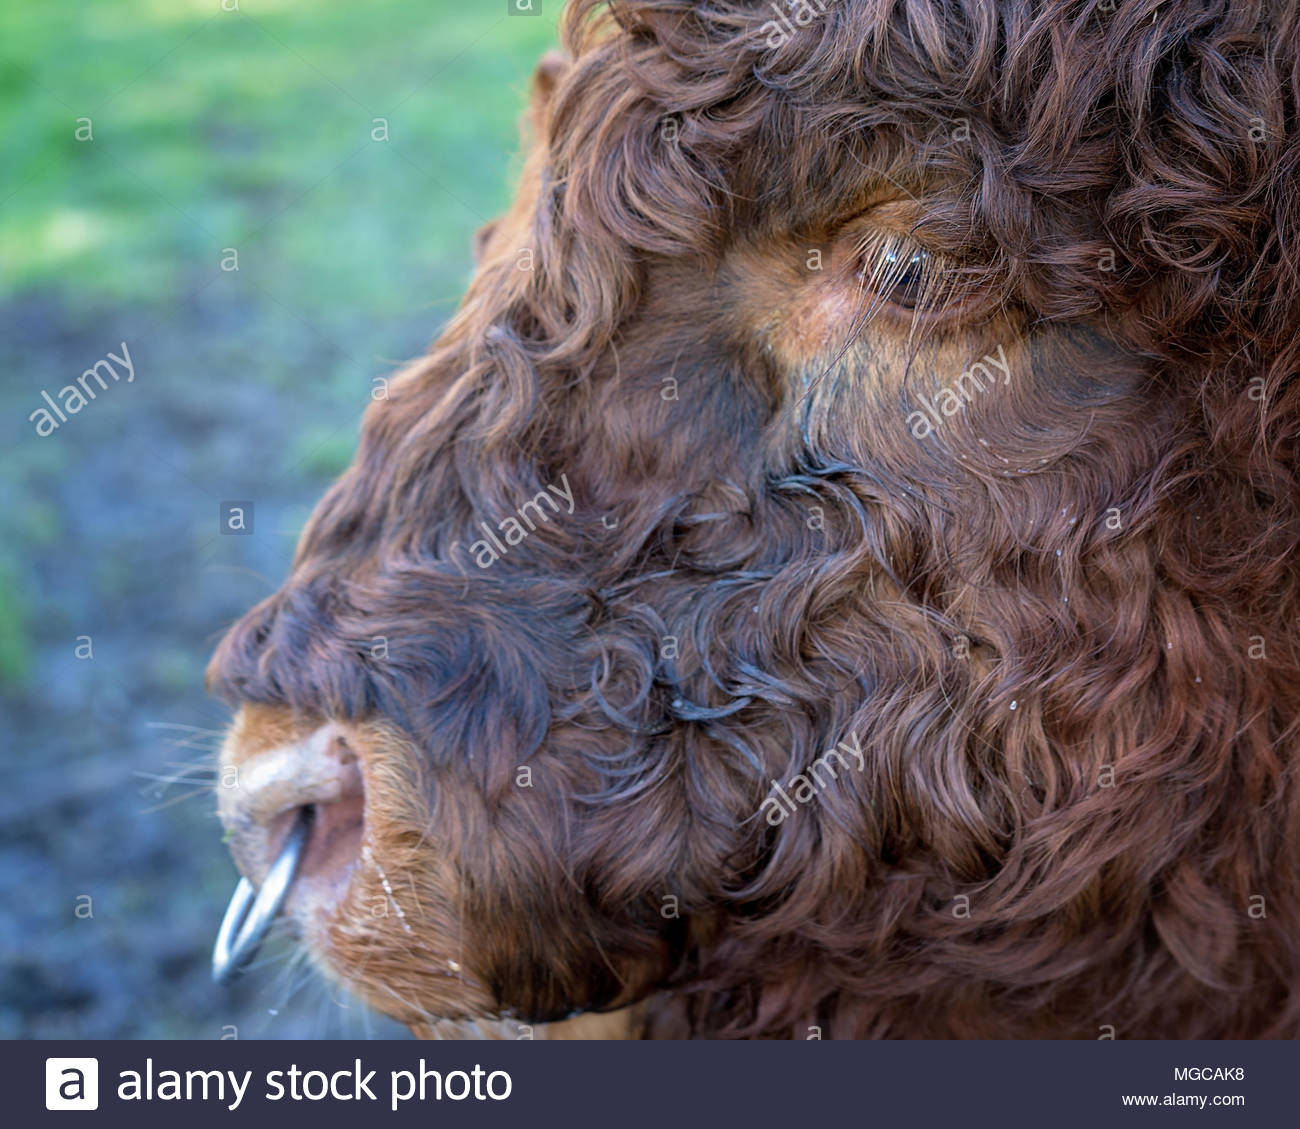 Close Up Of Curly Haired Highland Cow In New Zealand - Stock Image